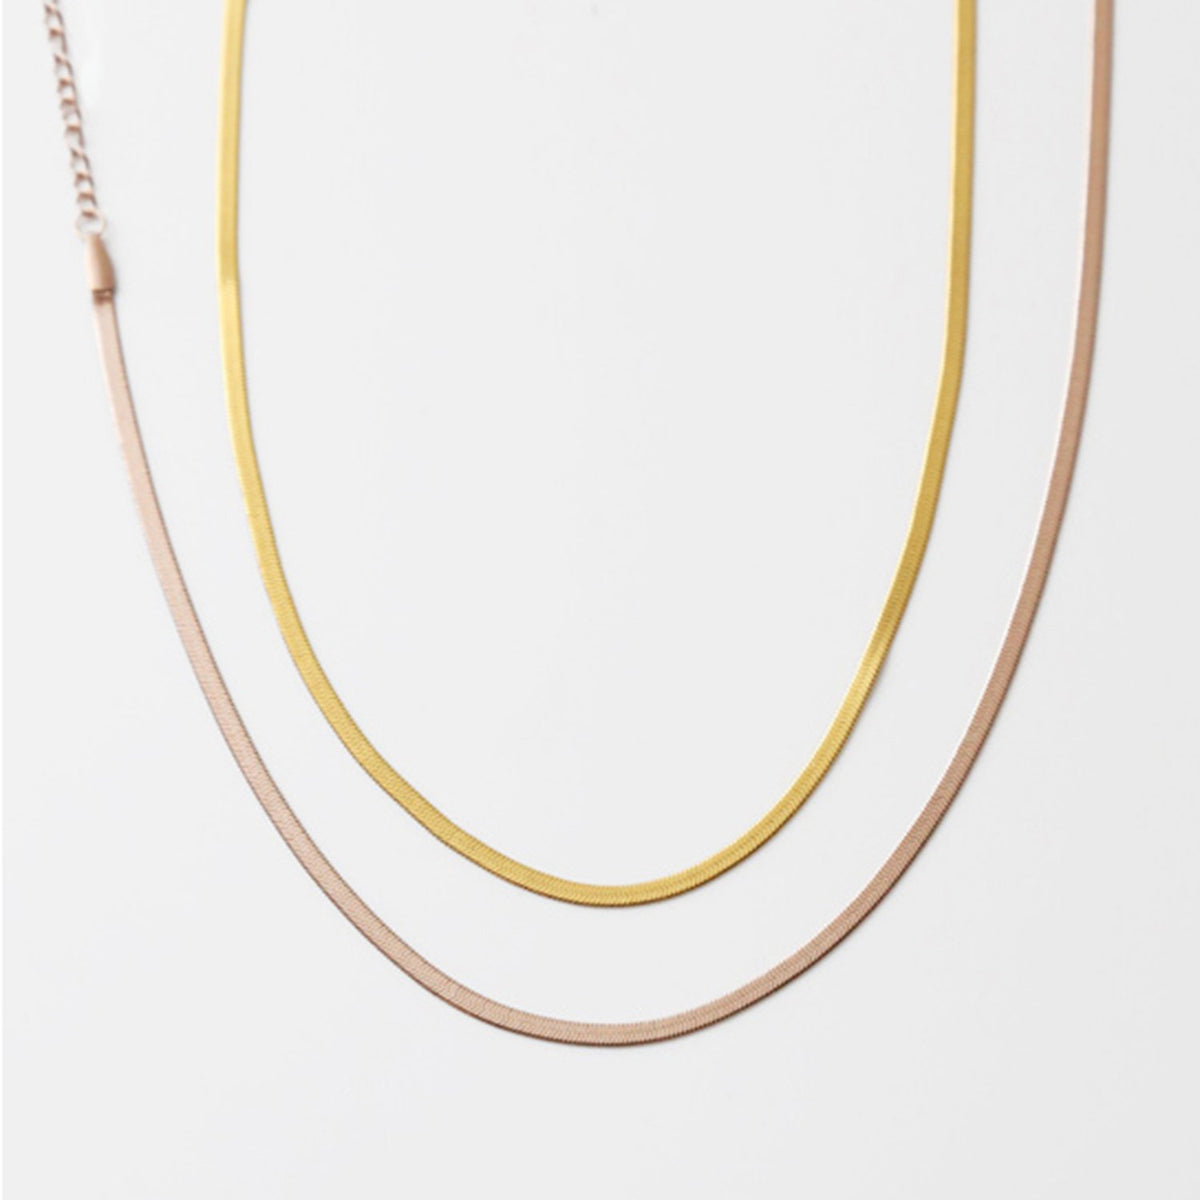 Vintage 14K Gold Snake Bone Necklace - worthtryit.com